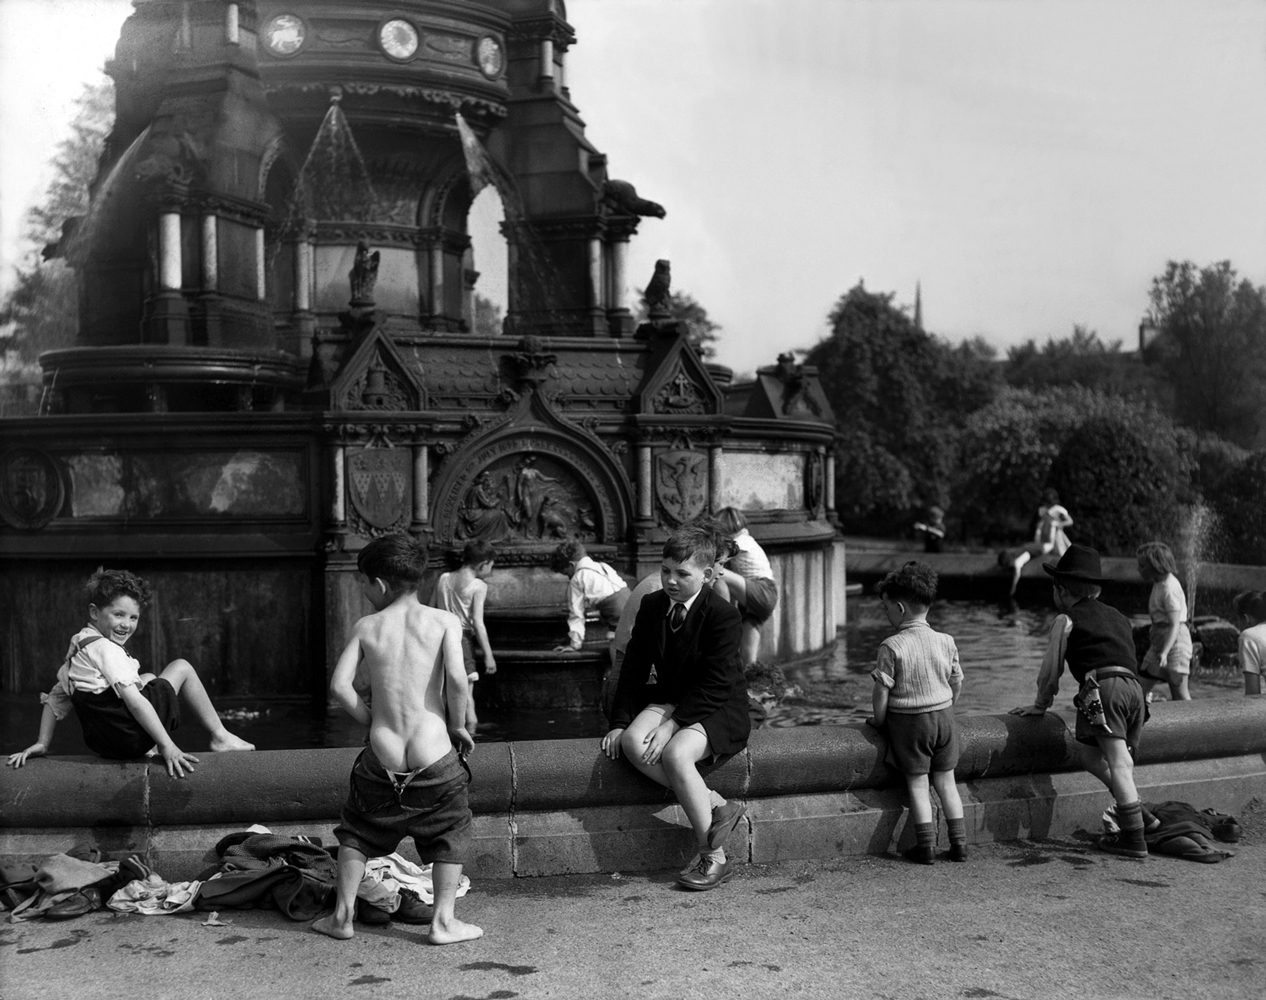 Glasgow Boys in Fountain